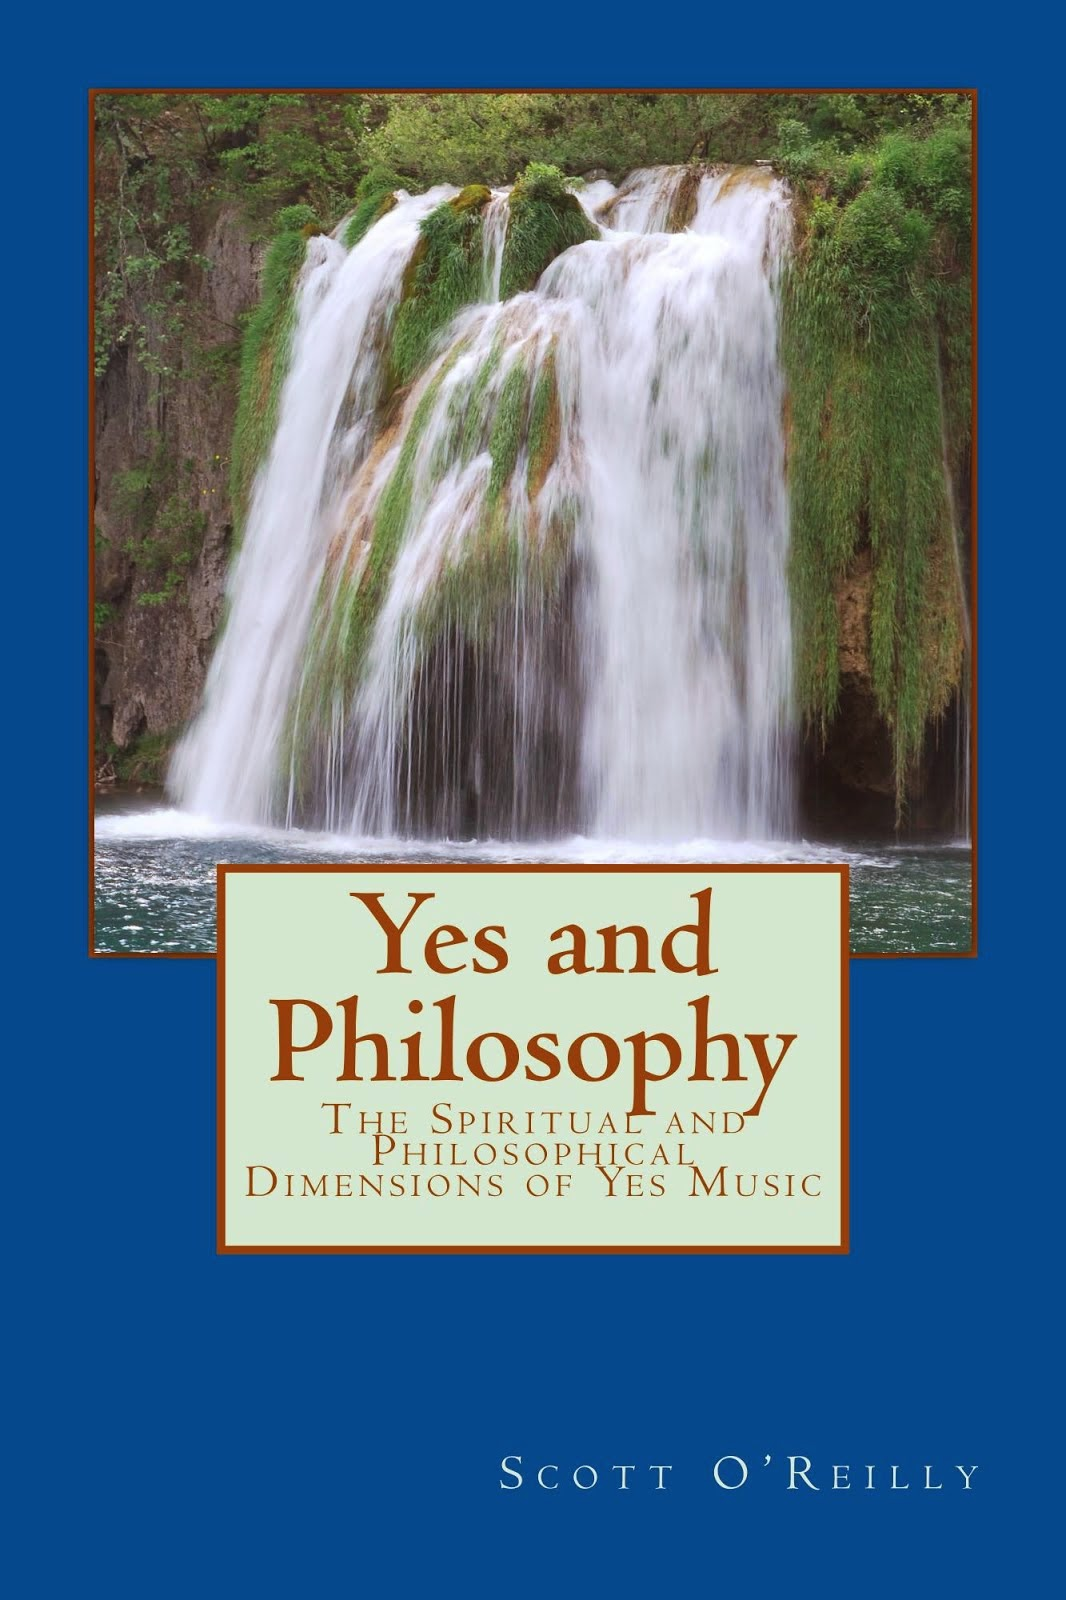 Yes and Philosophy